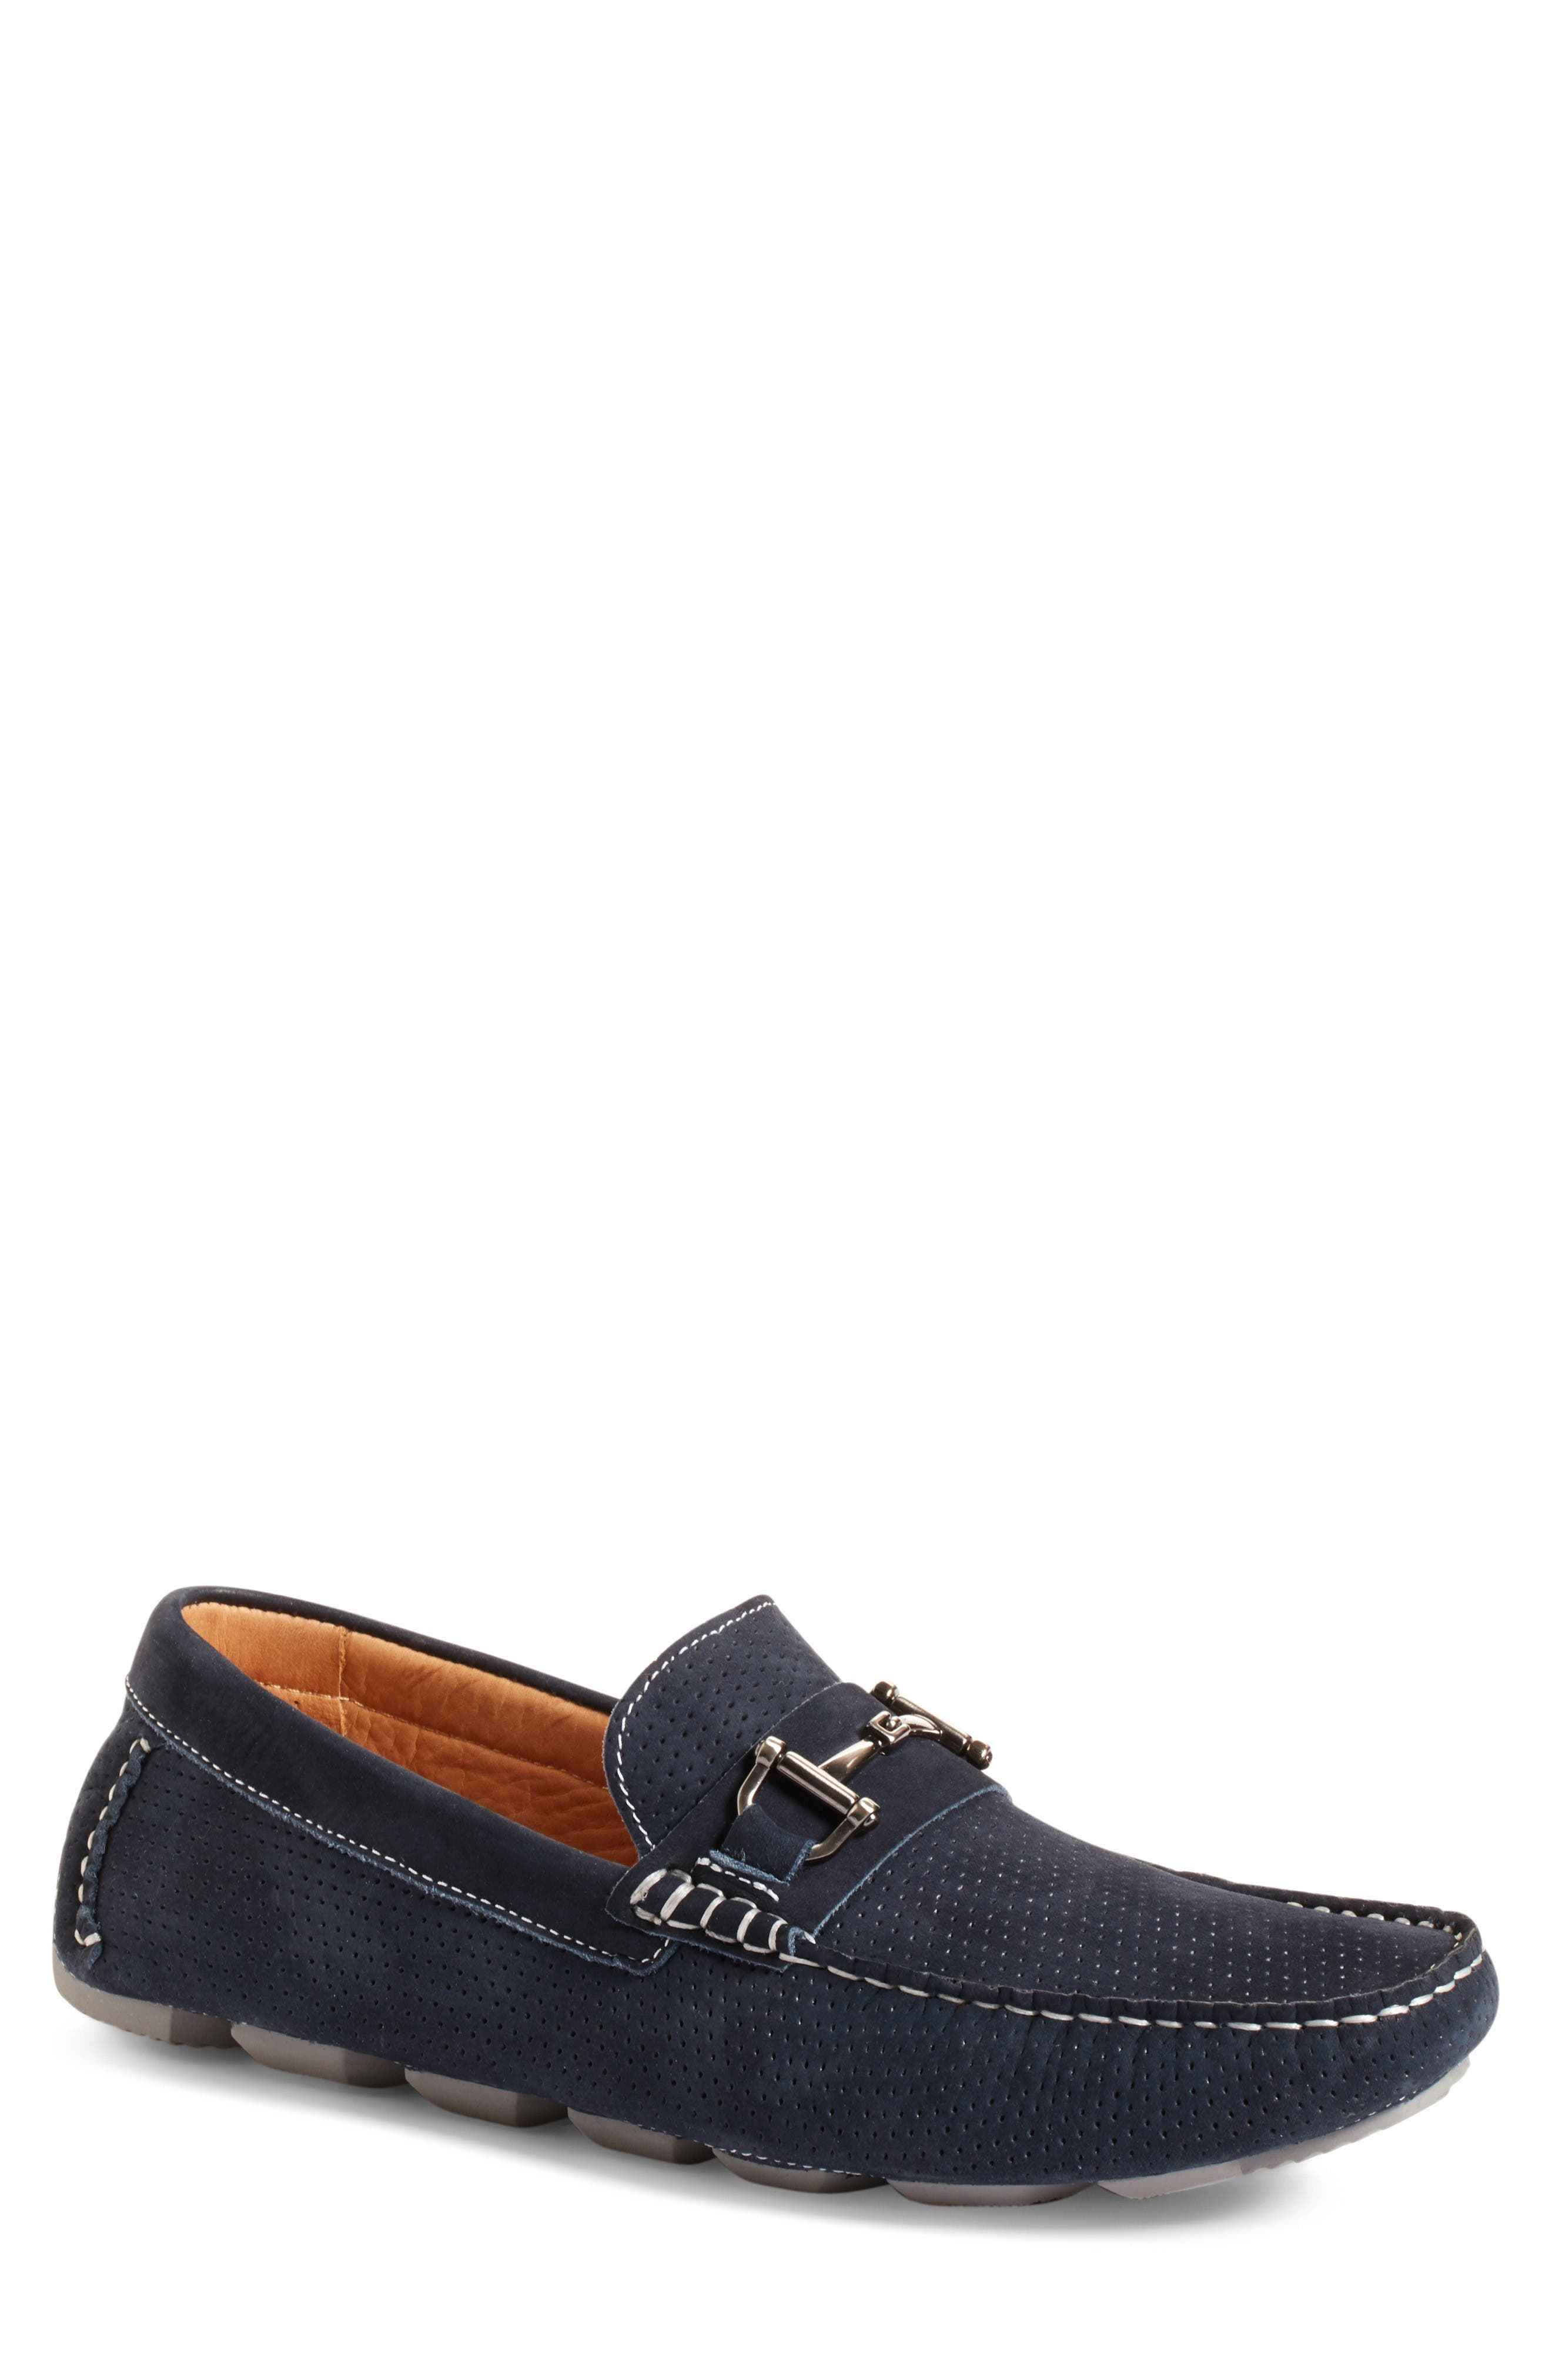 Destin Driving Shoe,                             Main thumbnail 1, color,                             Navy Perf Nubuck